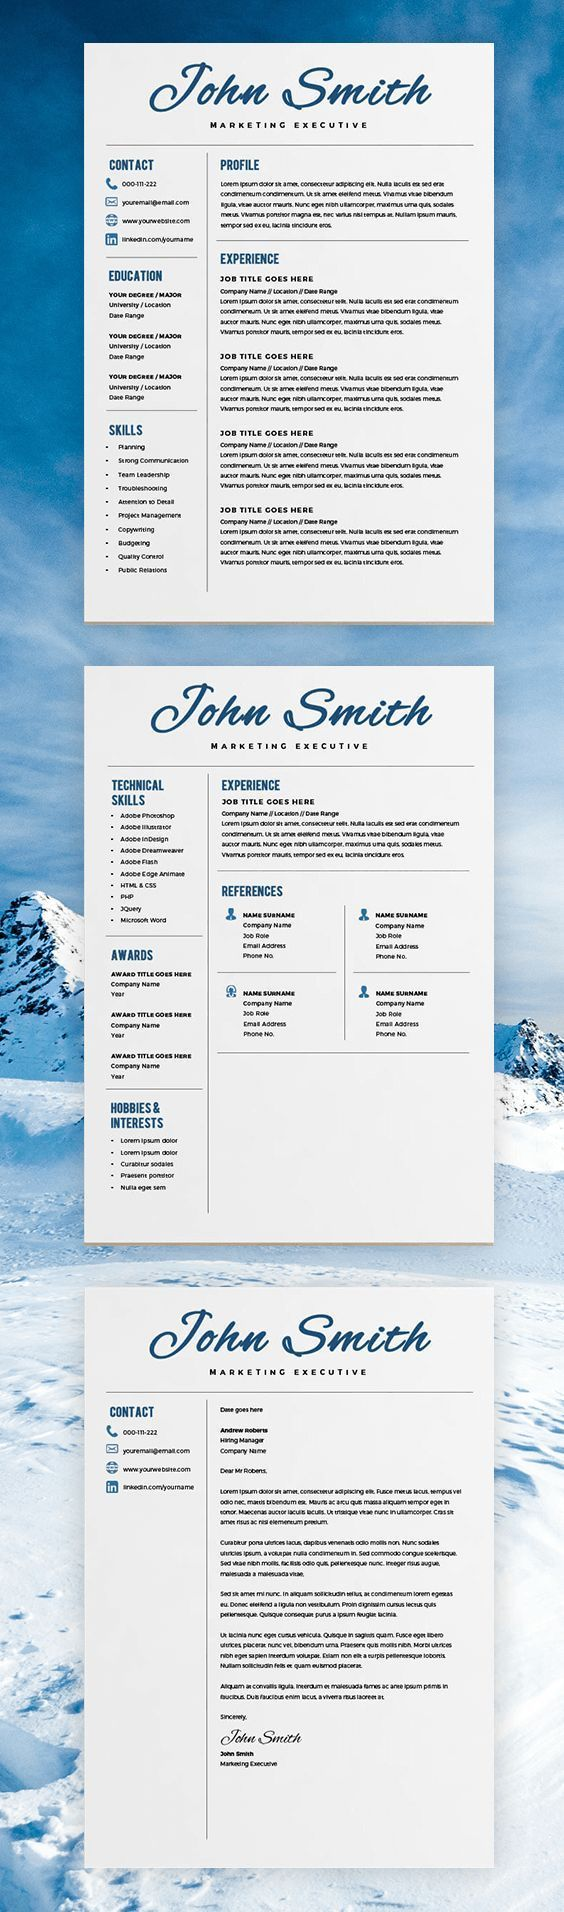 Resume Templates For Pages 2023 Best Cv & Resume Design Images On Pinterest  Cv Resume